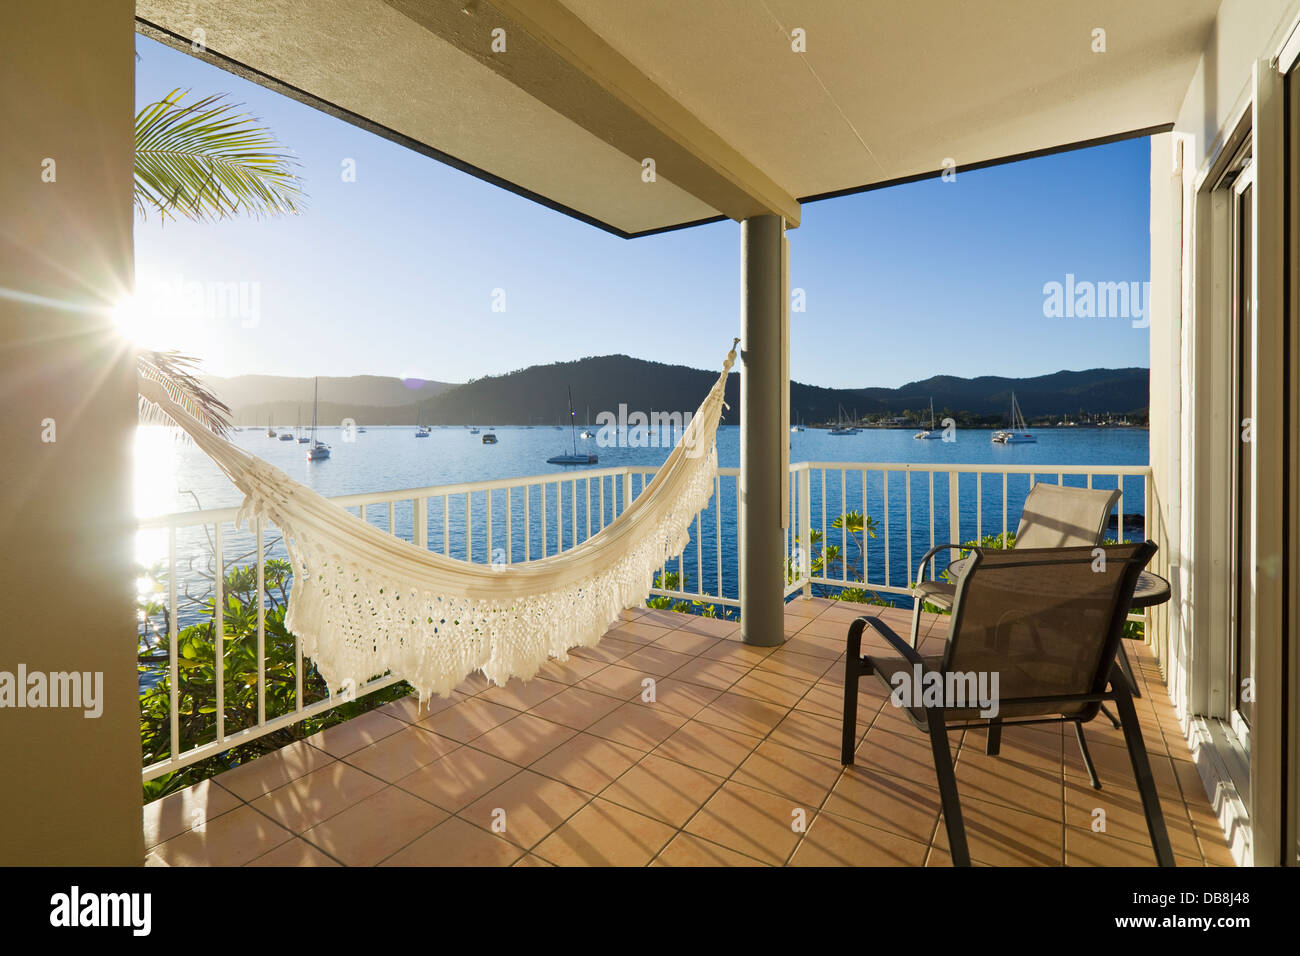 Die Coral Sea Resort am Wasser mit Meerblick. Airlie Beach, Whitsundays, Queensland, Australien Stockbild